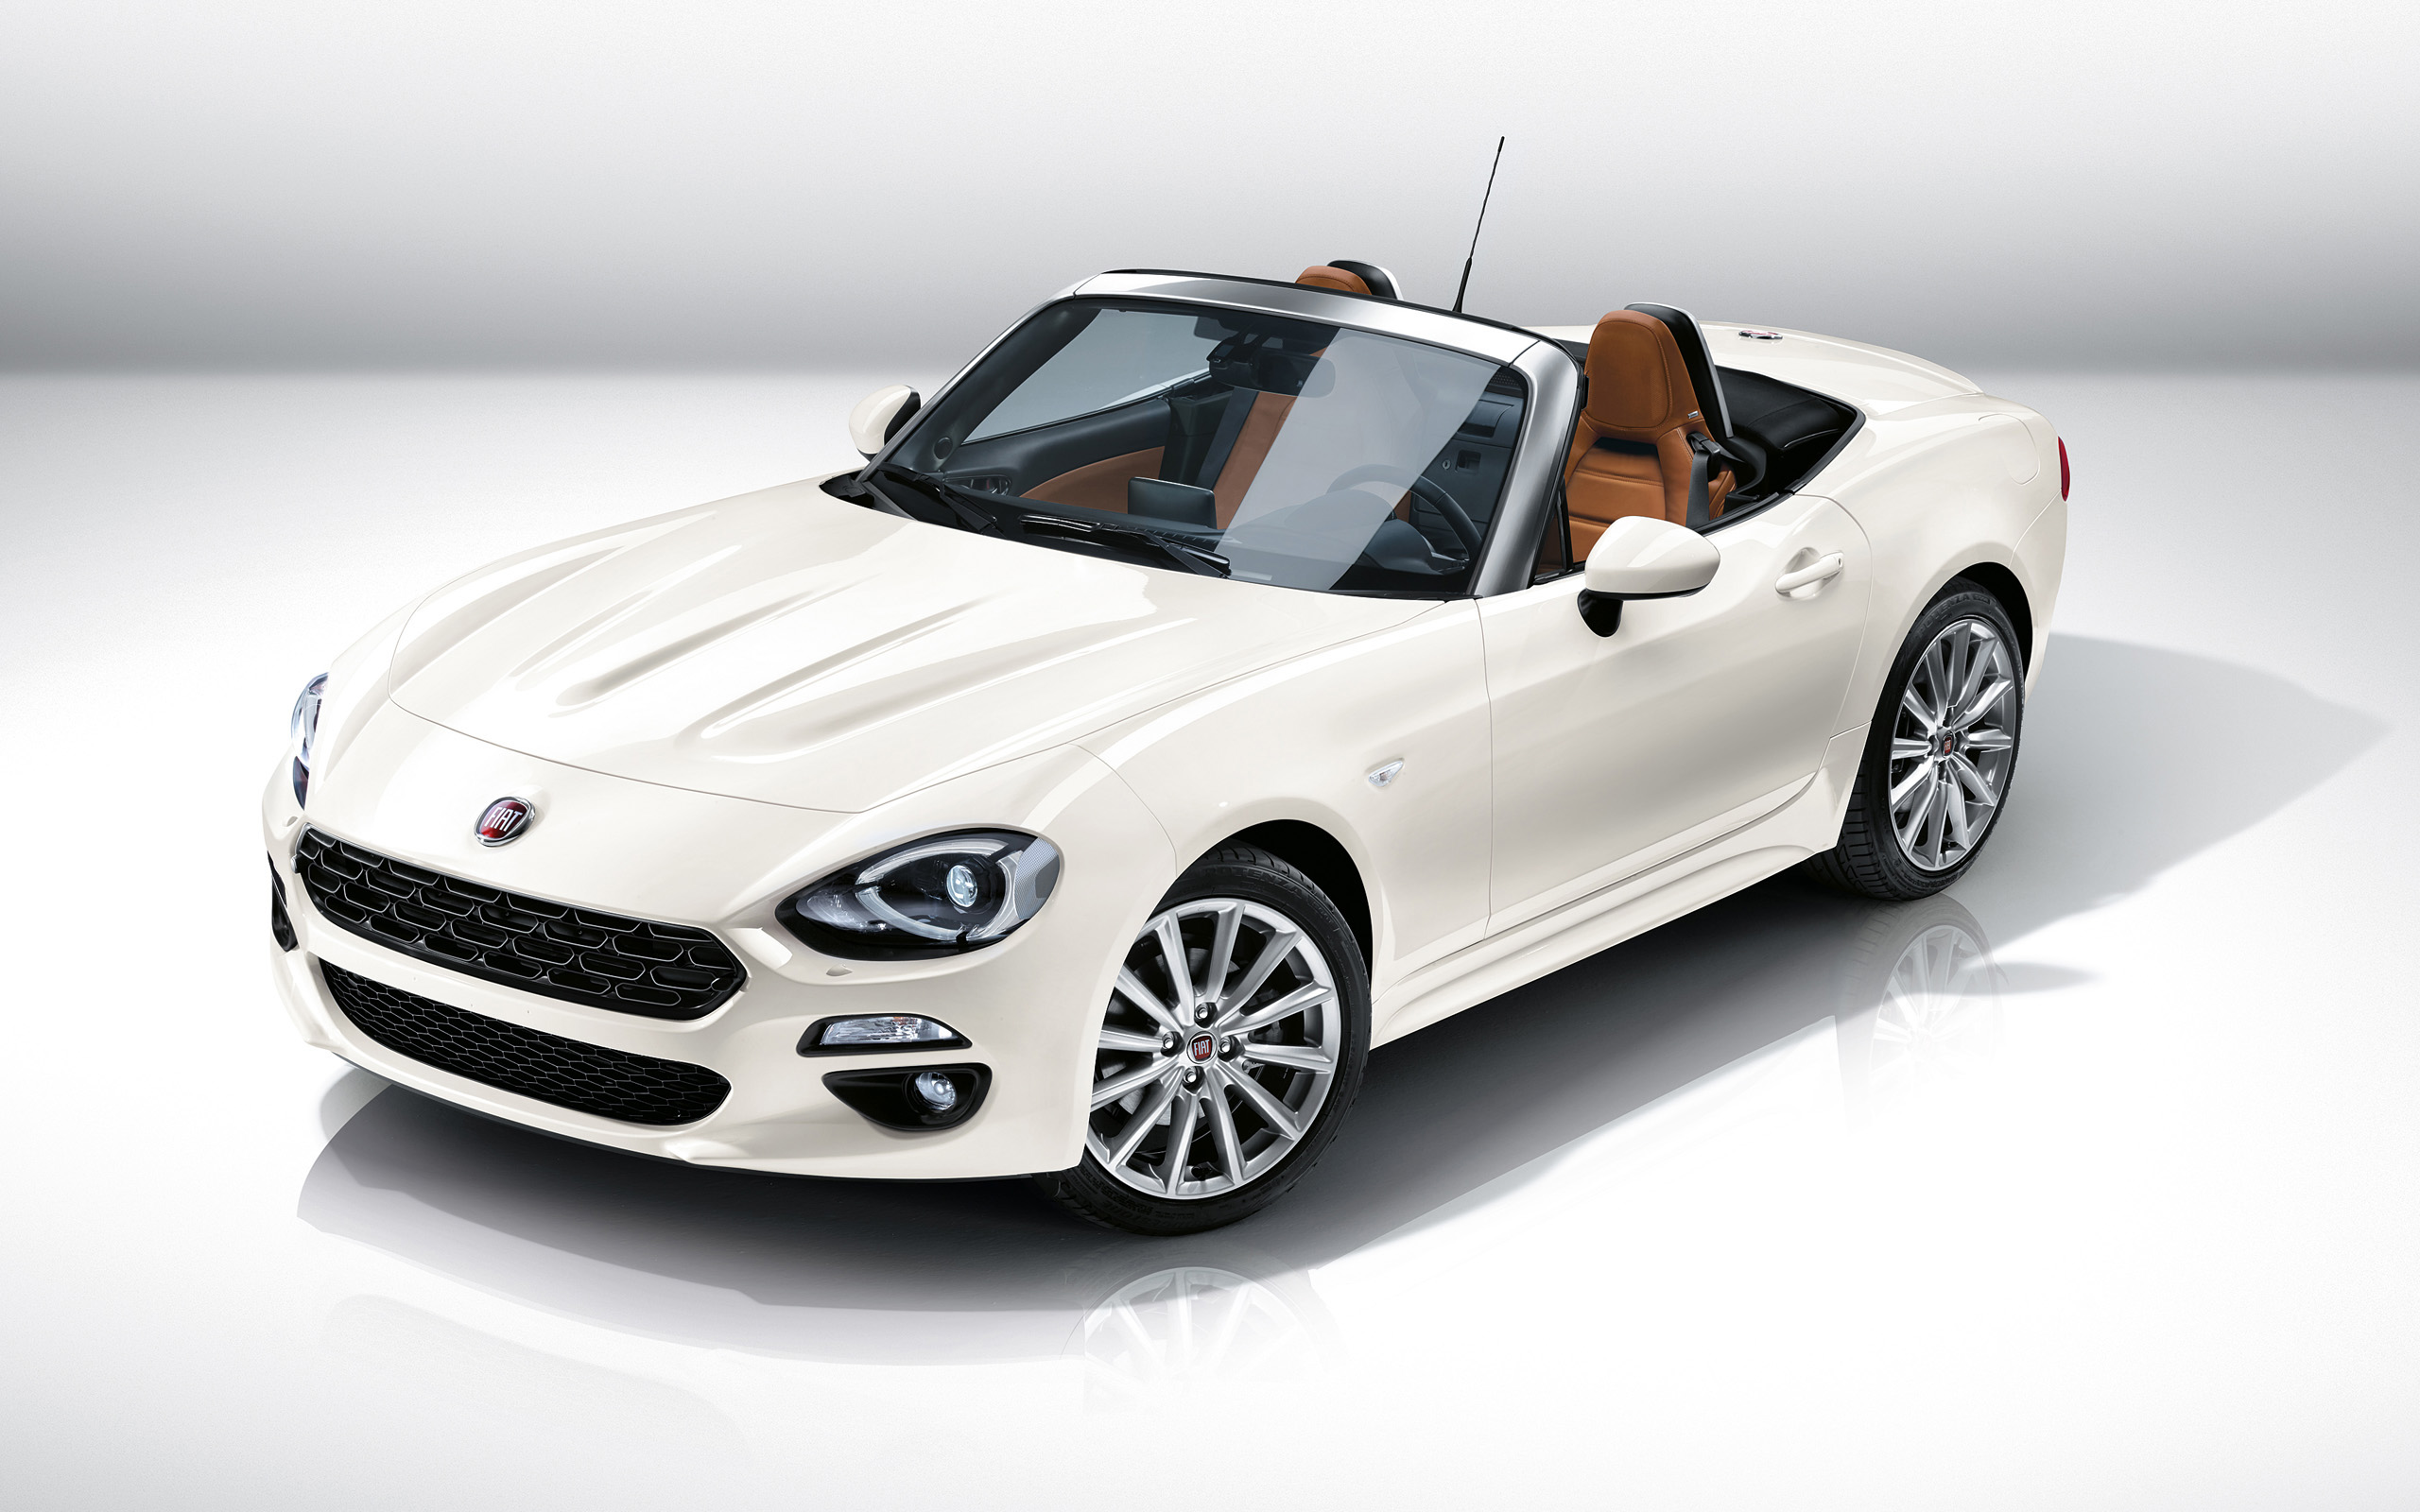 Fiat 124 Spider 2017 Wallpaper Hd Car Wallpapers